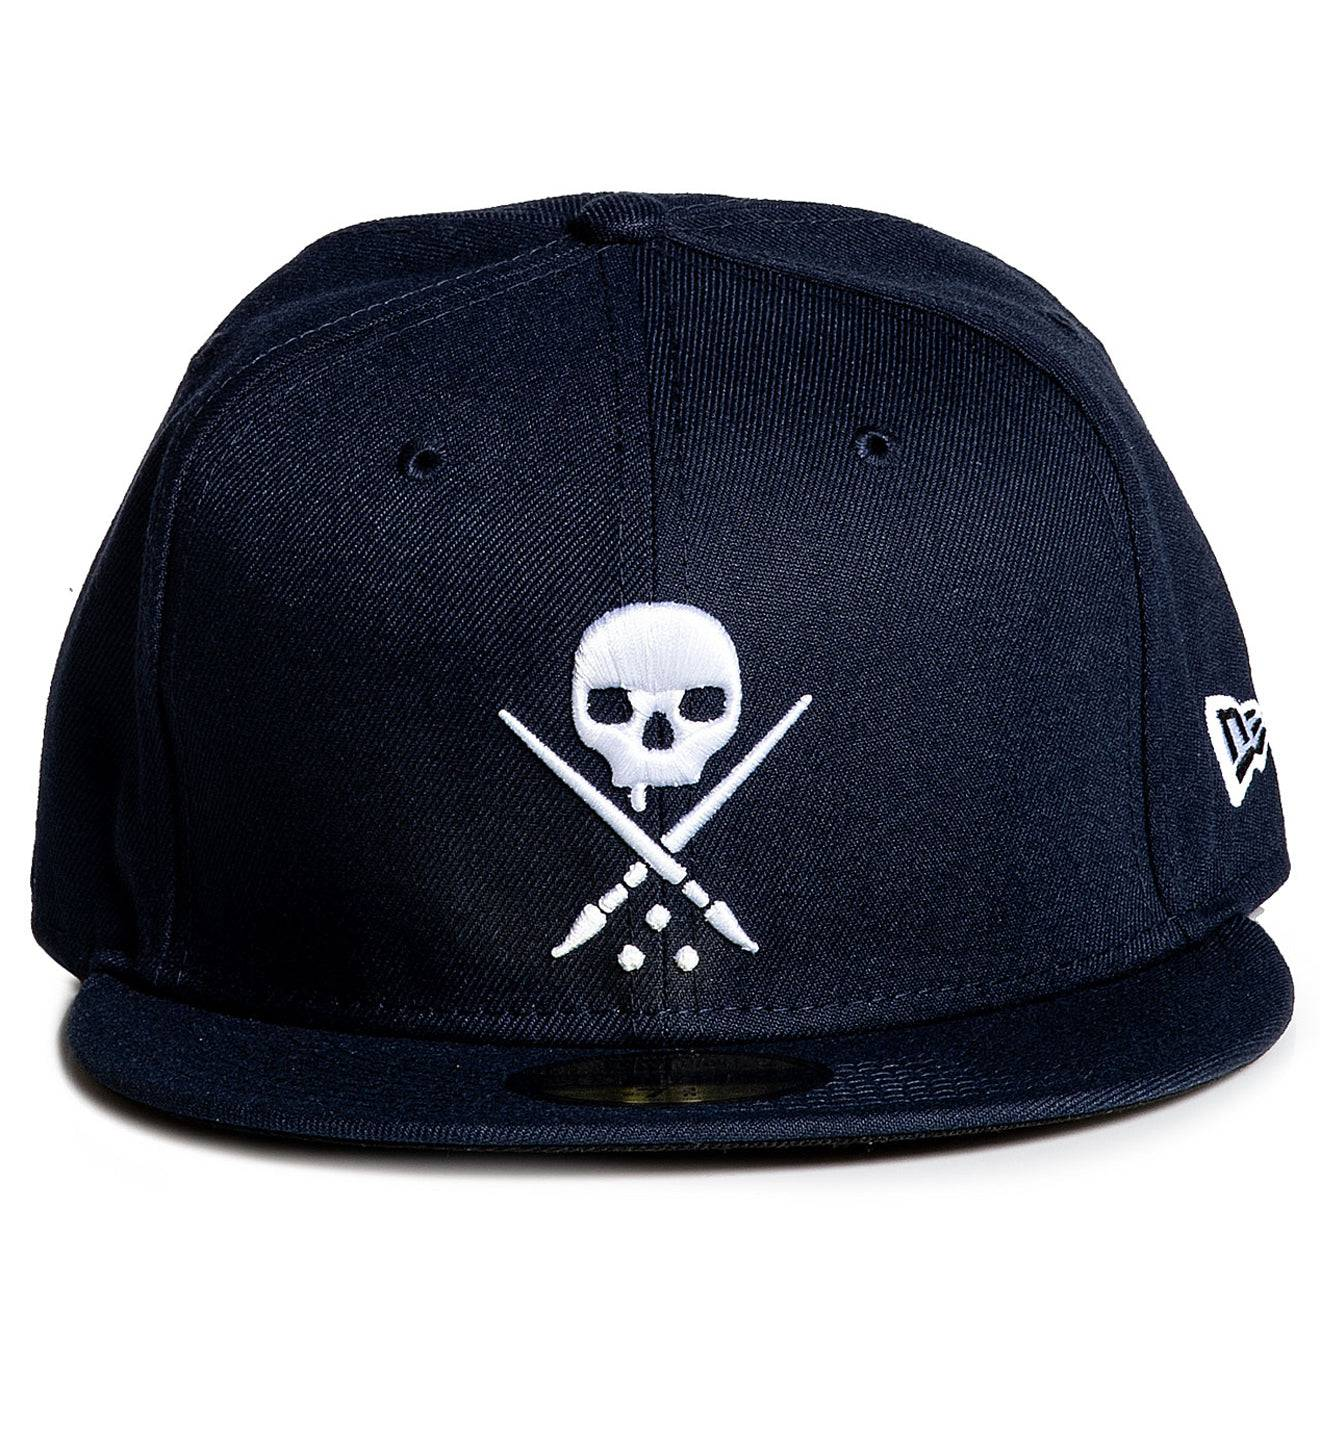 Mens Fitted Badge Navy, NAVY / 7